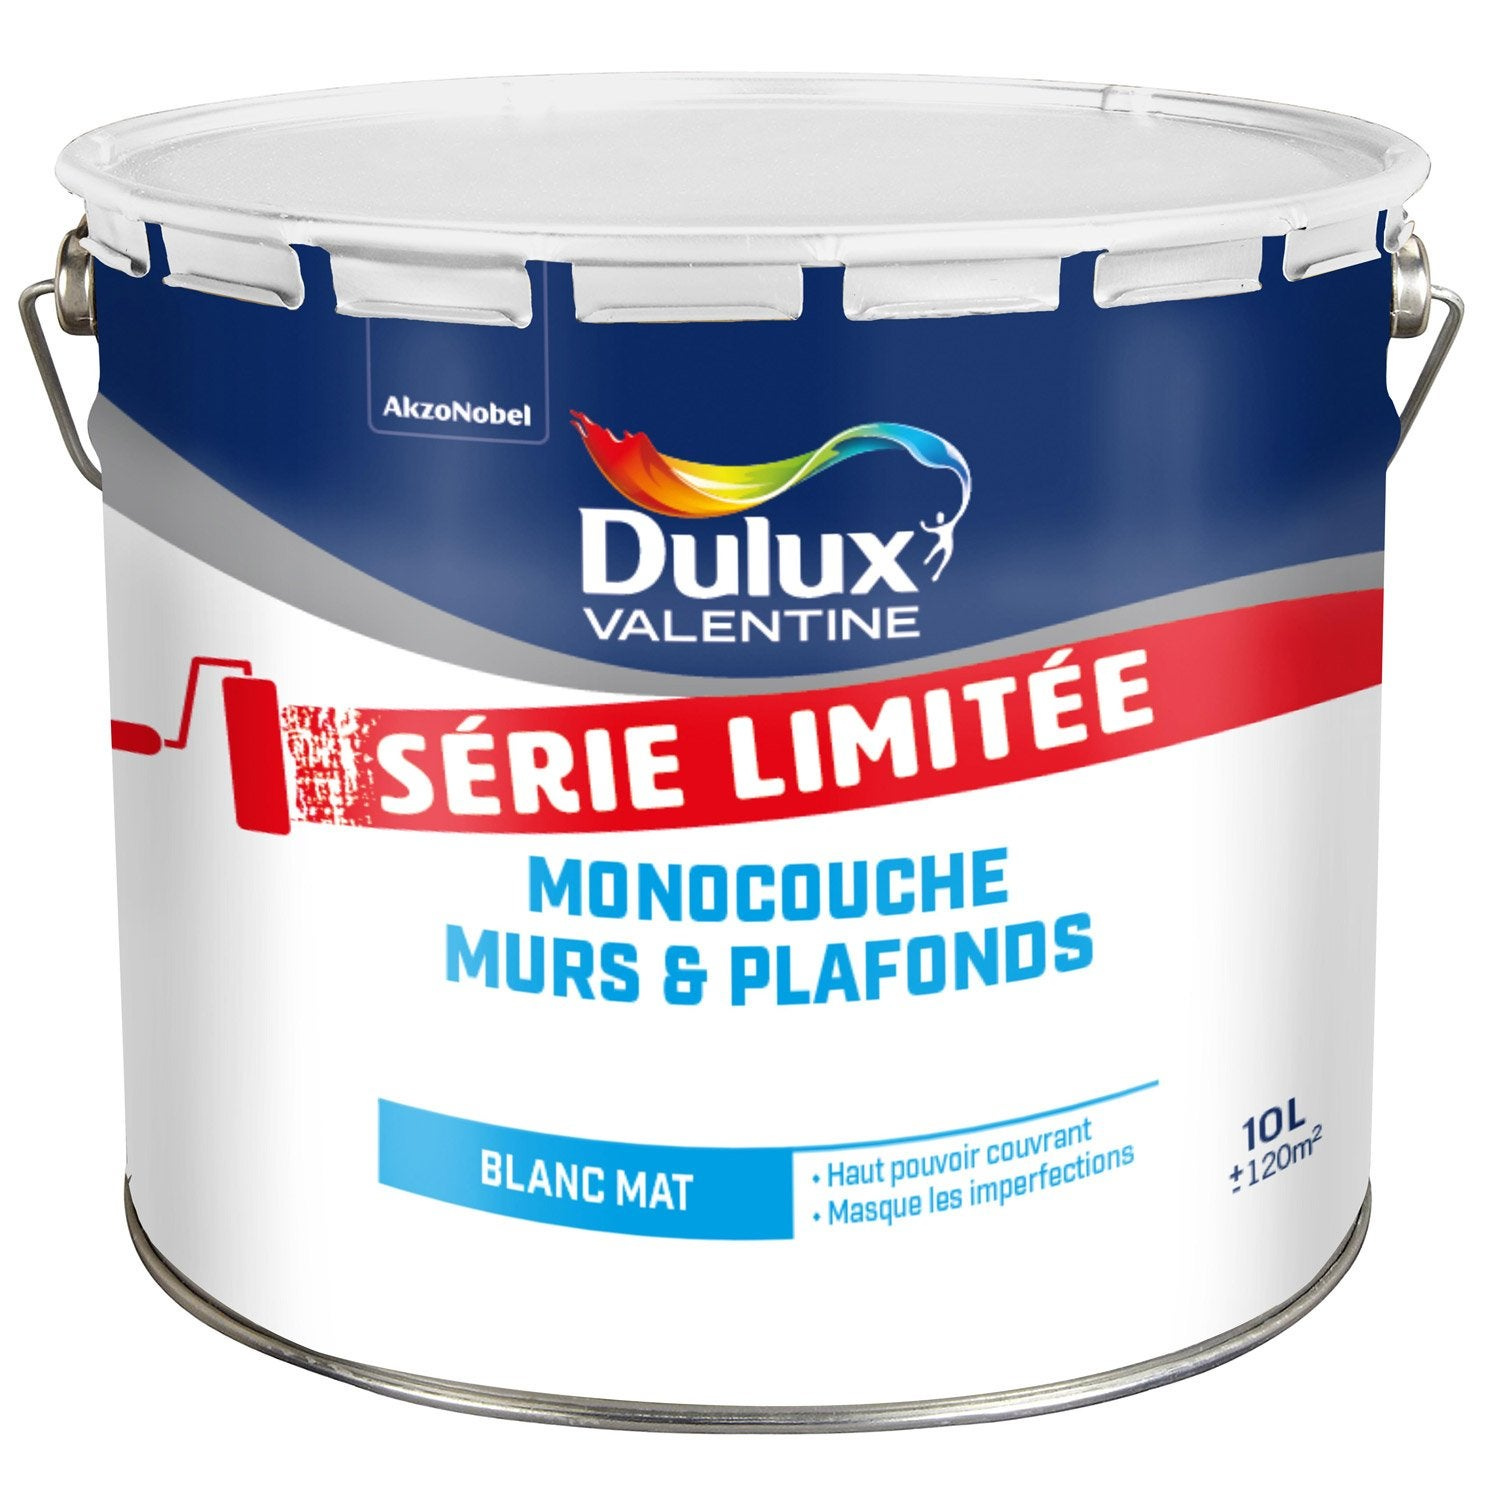 peinture blanche mur et plafond dulux valentine mat 10 l leroy merlin. Black Bedroom Furniture Sets. Home Design Ideas